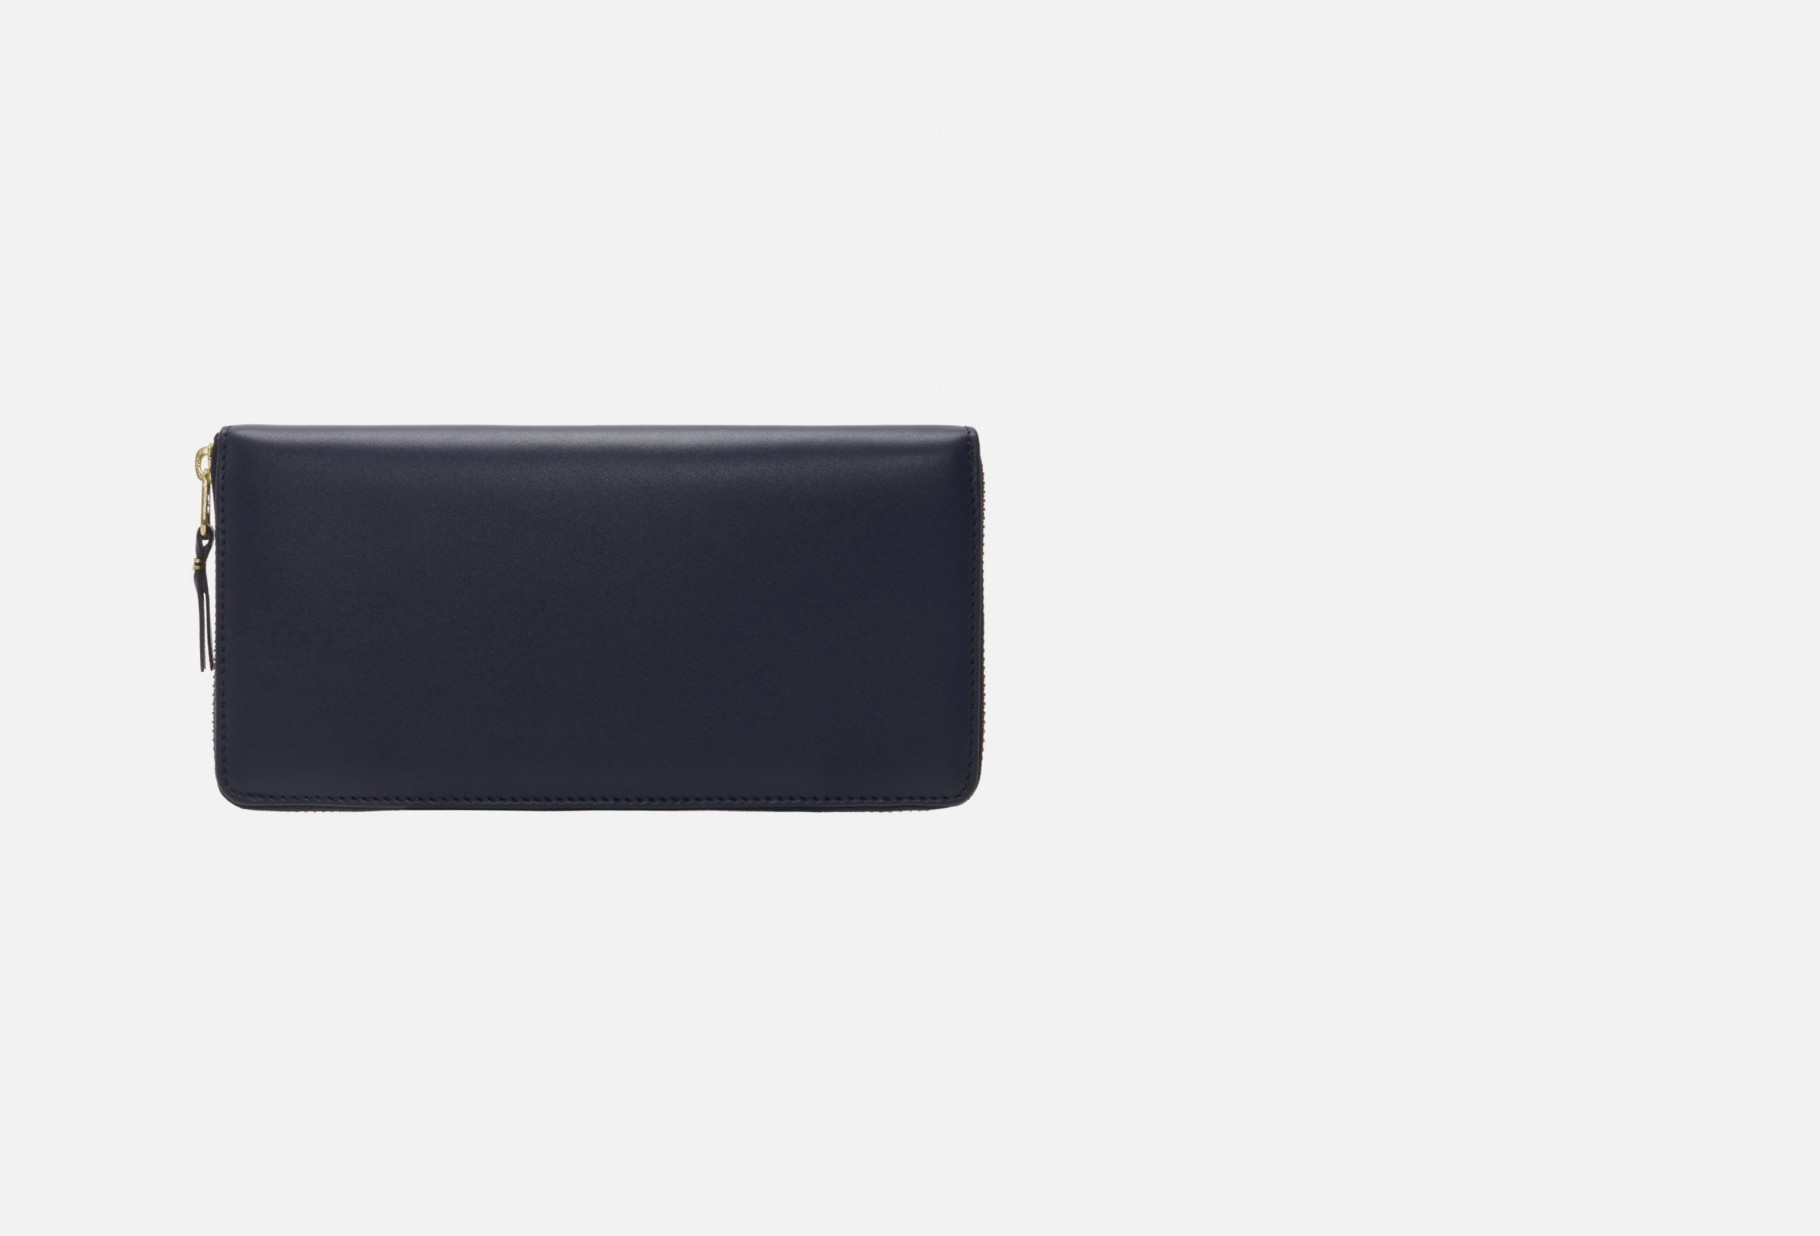 COMME DES GARÇONS WALLETS / Cdg leather wallet classic Sa0110 navy